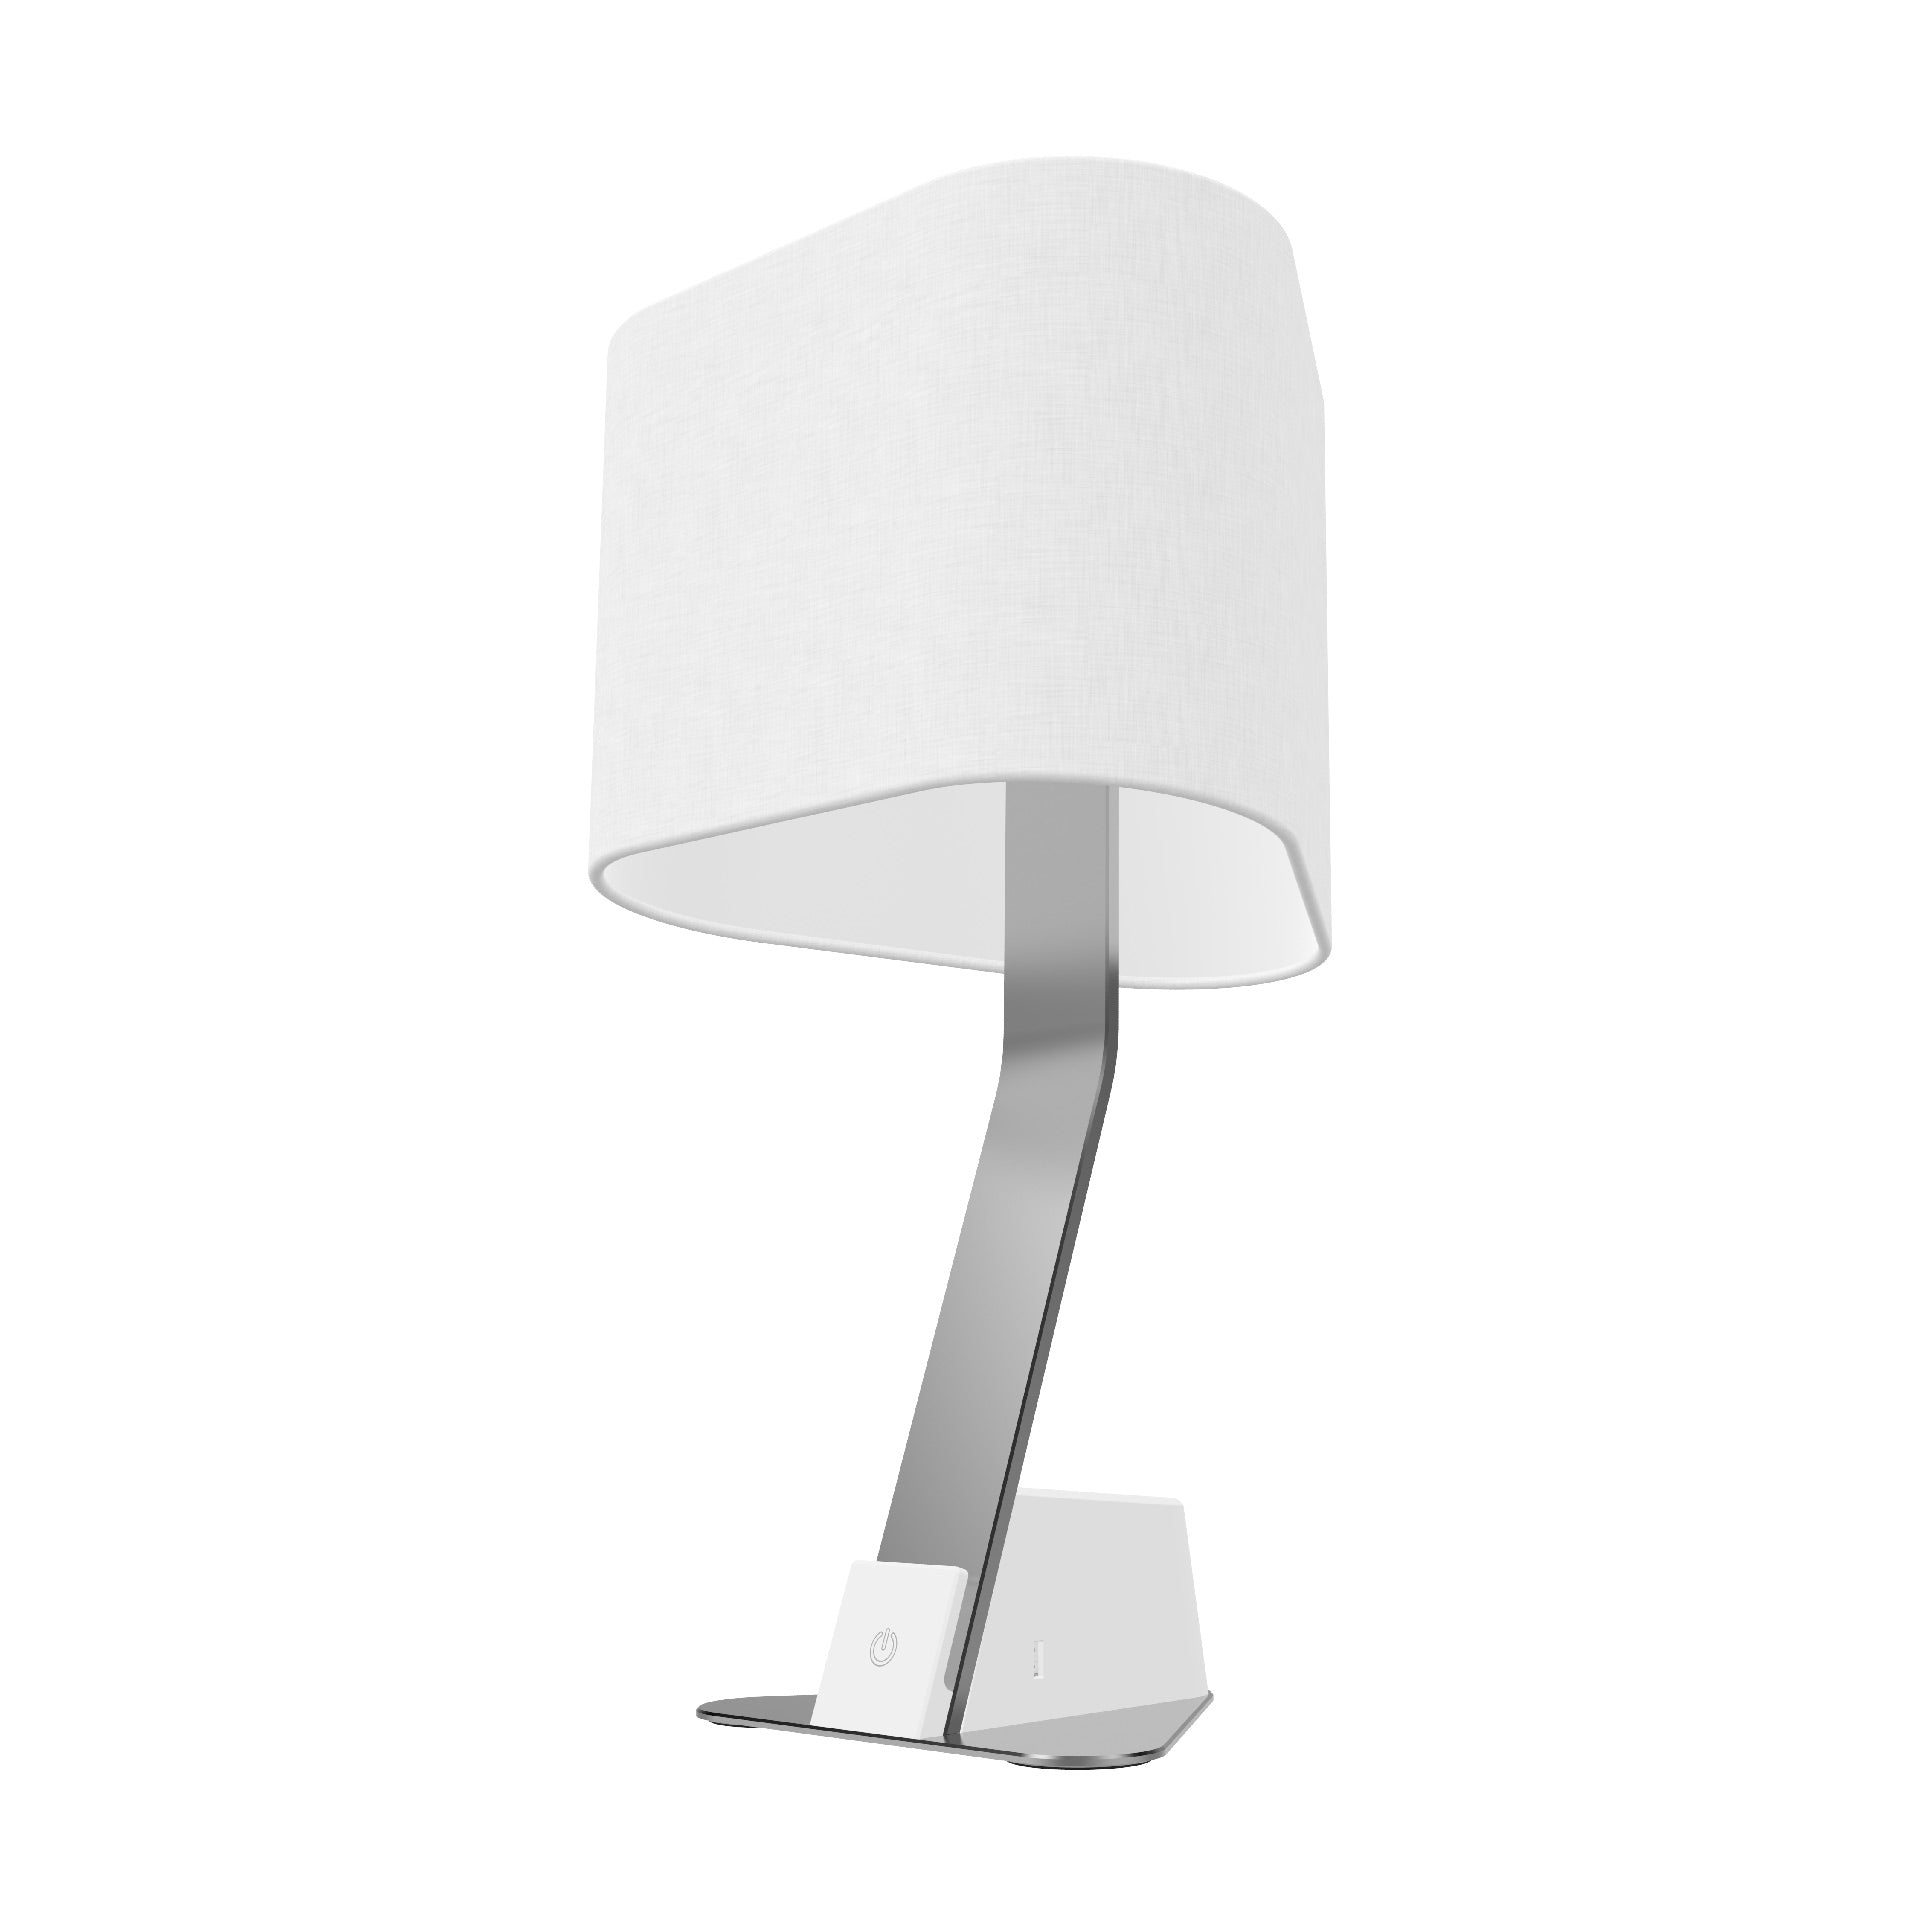 The Brooklyn AC LED Desk Lamp pairs the understated modern curves of the Brooklyn line with the functionality of two universal AC outlets (compatible with US, UK, EURO, and other international plugs), and two USB ports. The fine linen shade offers a sleek and elegant finish to compliment the lines of the aluminum extrusion. The lamp also features a hidden threaded mount for additional stability and security.